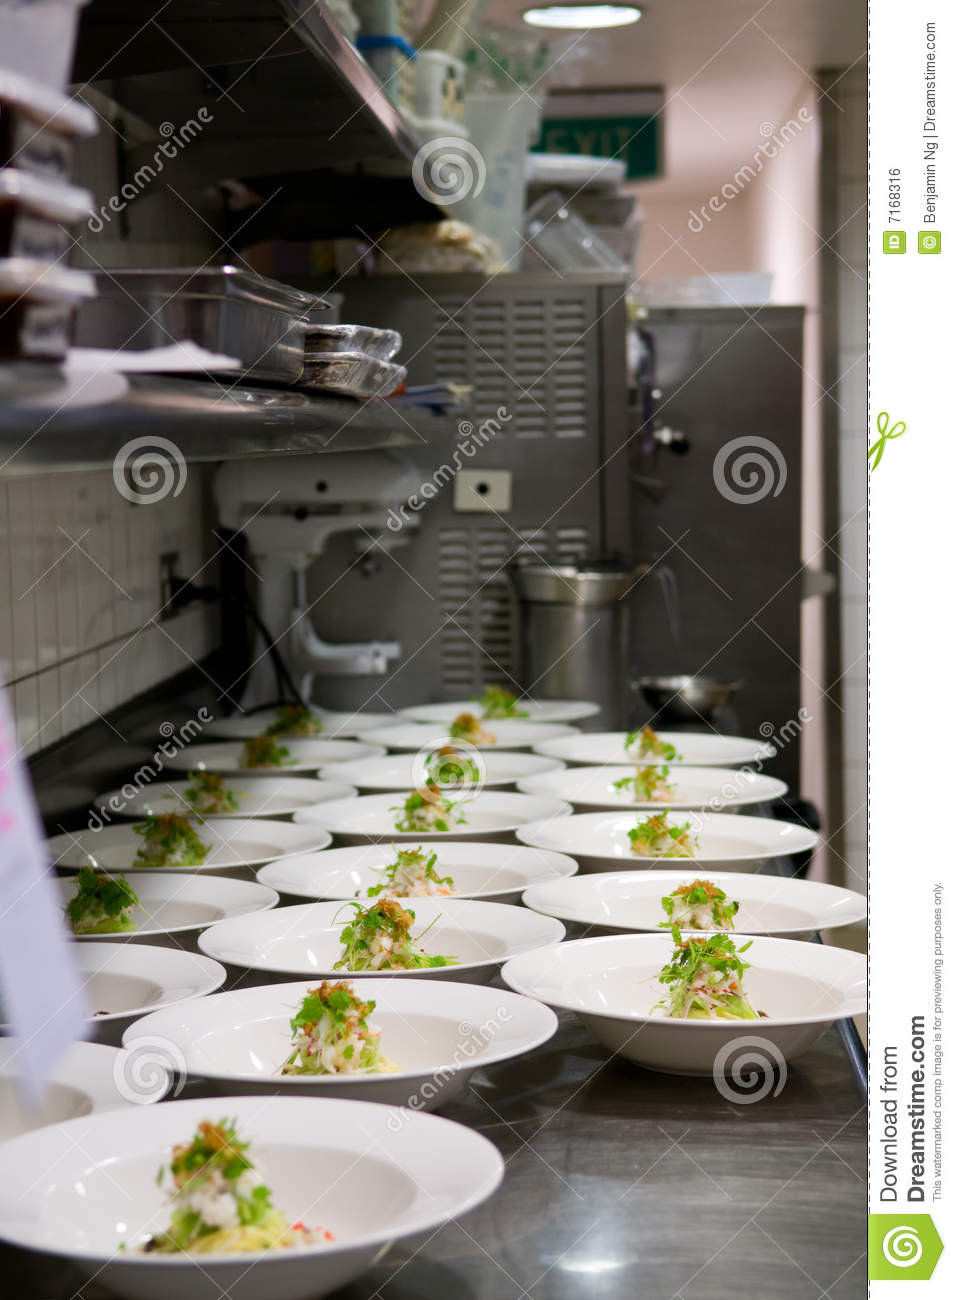 busy kitchen. Neat Rows Of Prepared Food In A Busy Kitchen